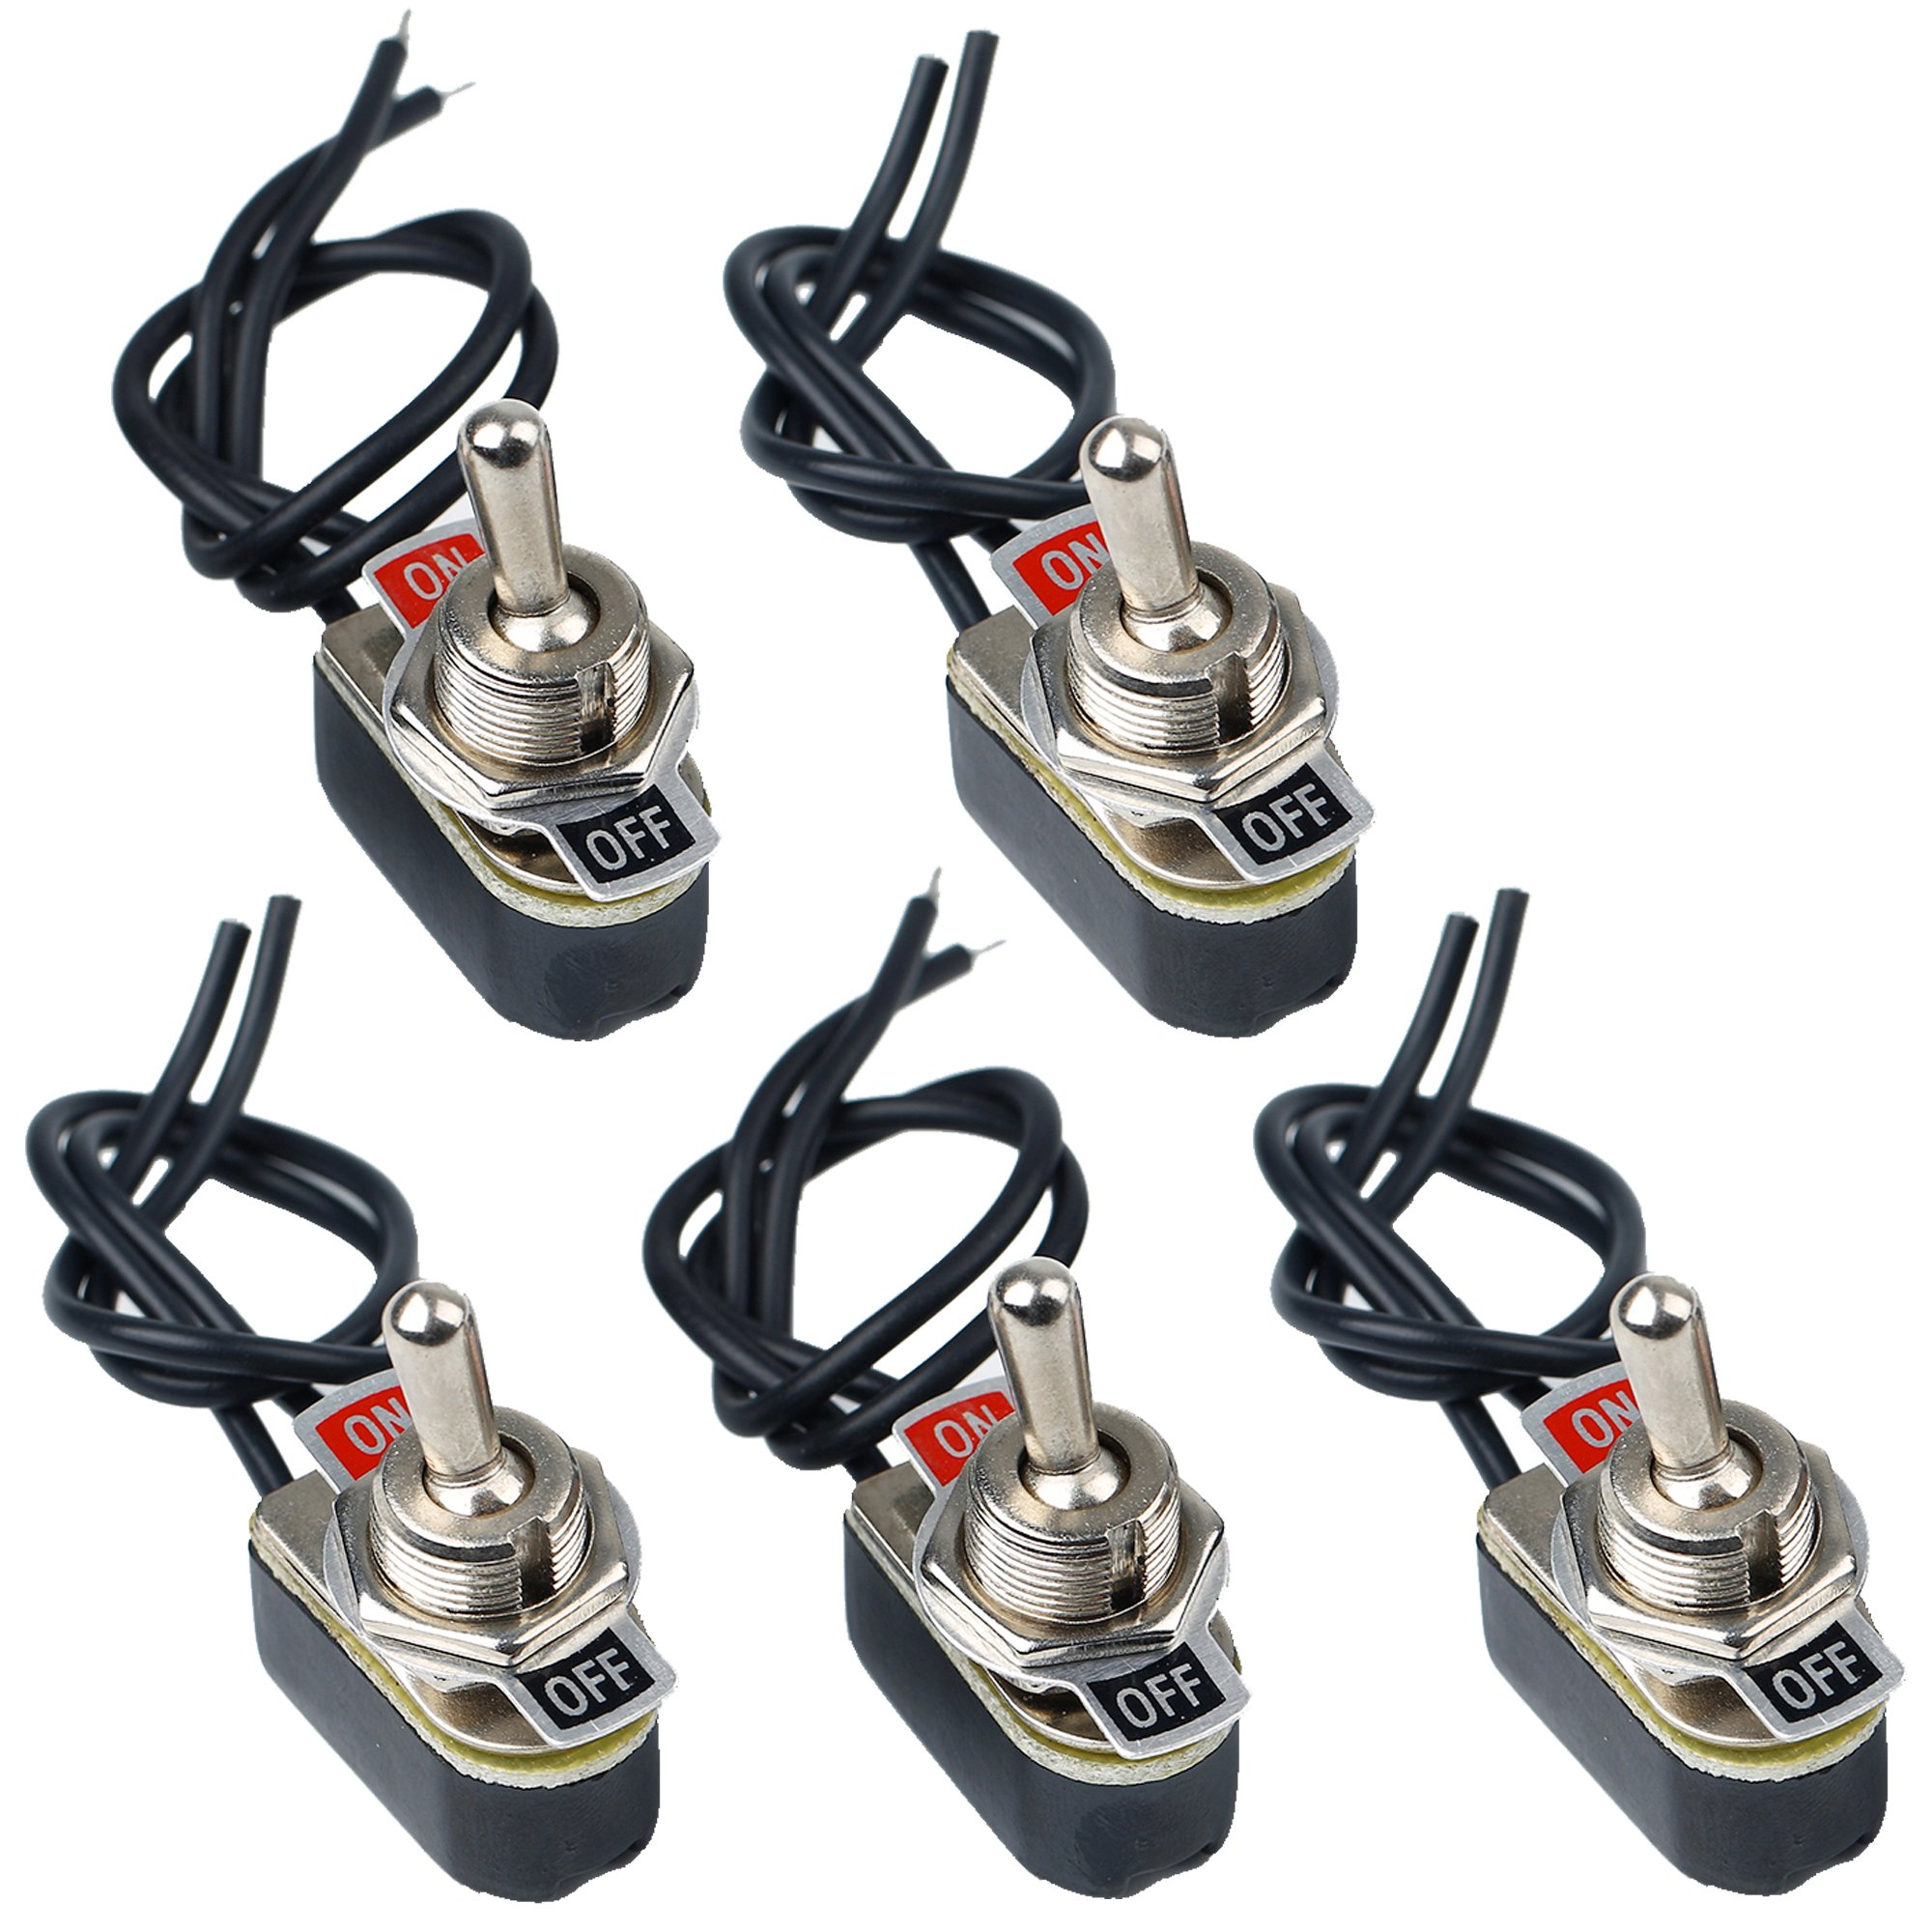 AIU TOP SPST 2Pin On-Off Toggle Switch with 6 Inch Leads, Perfect for Industrial Equipment Emergency Lighting Pack of 5